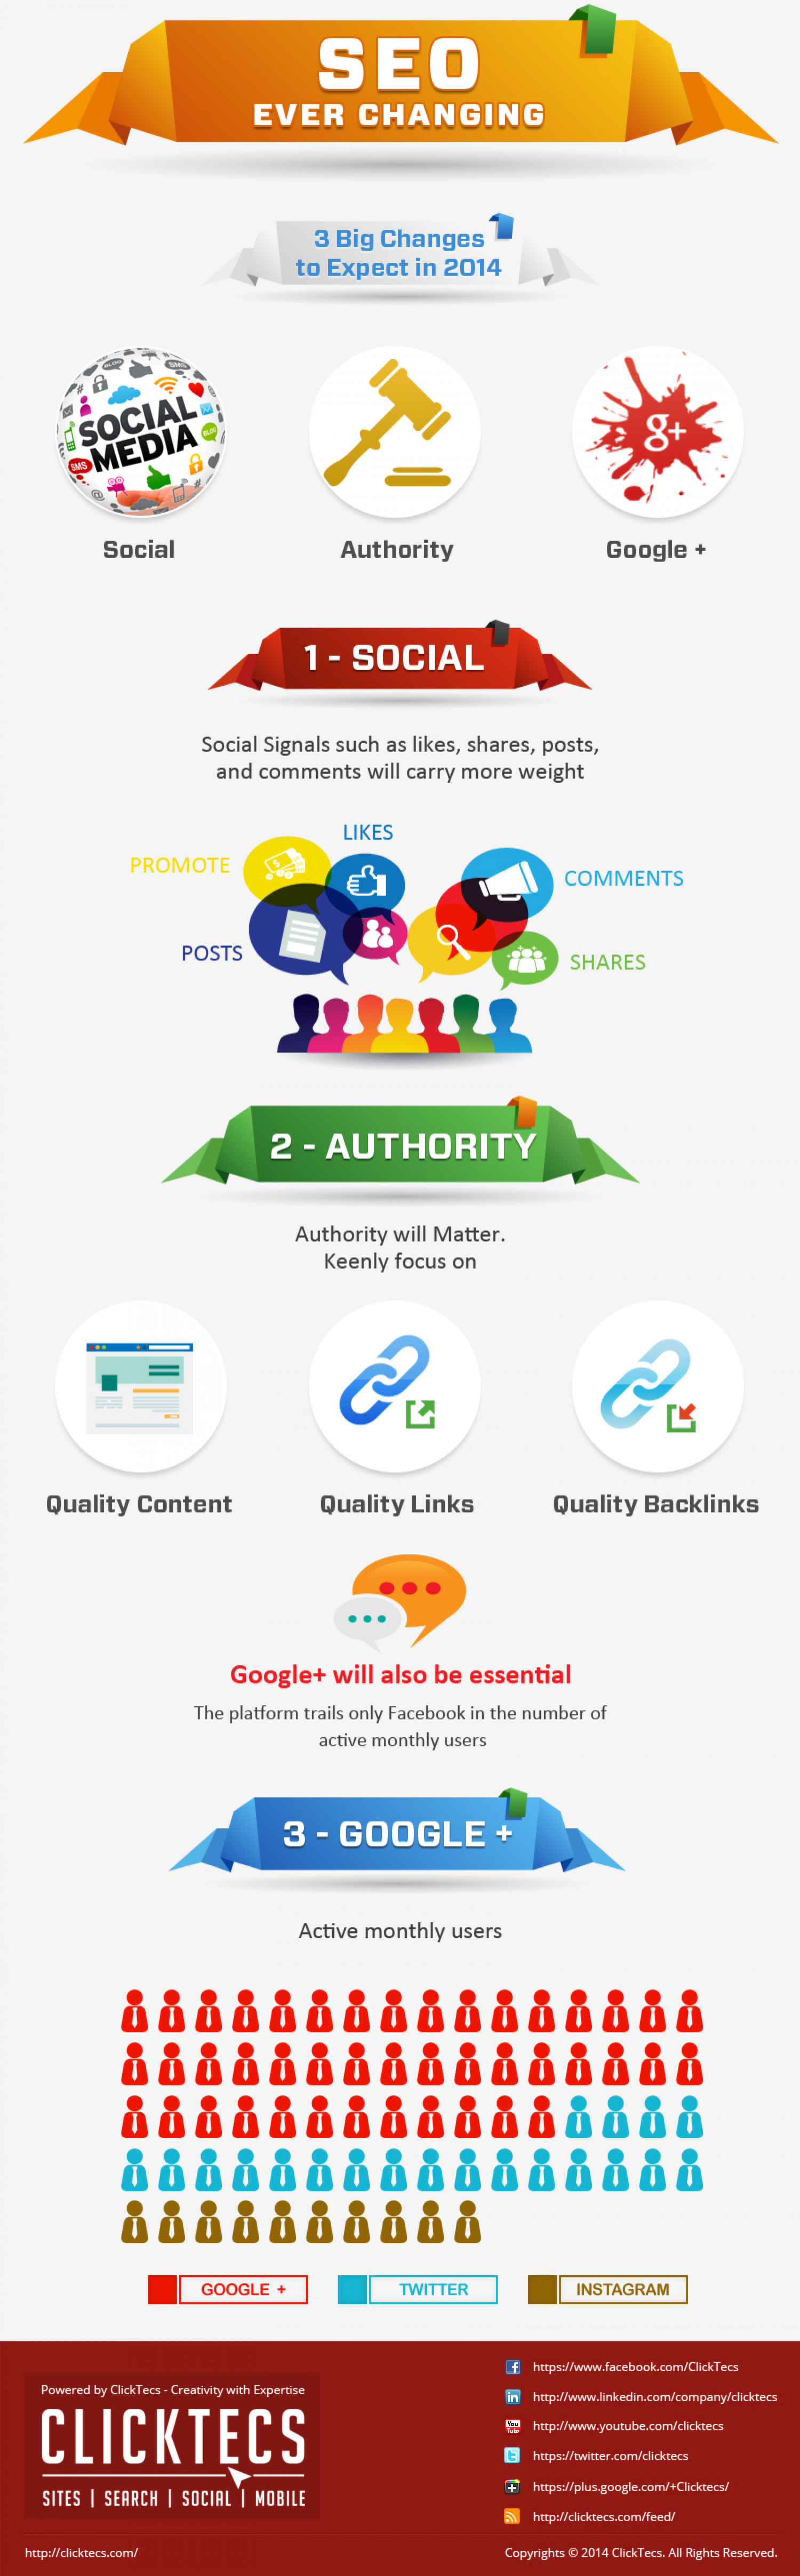 Latest Search Engine Optimization trends for 2014 Infographic